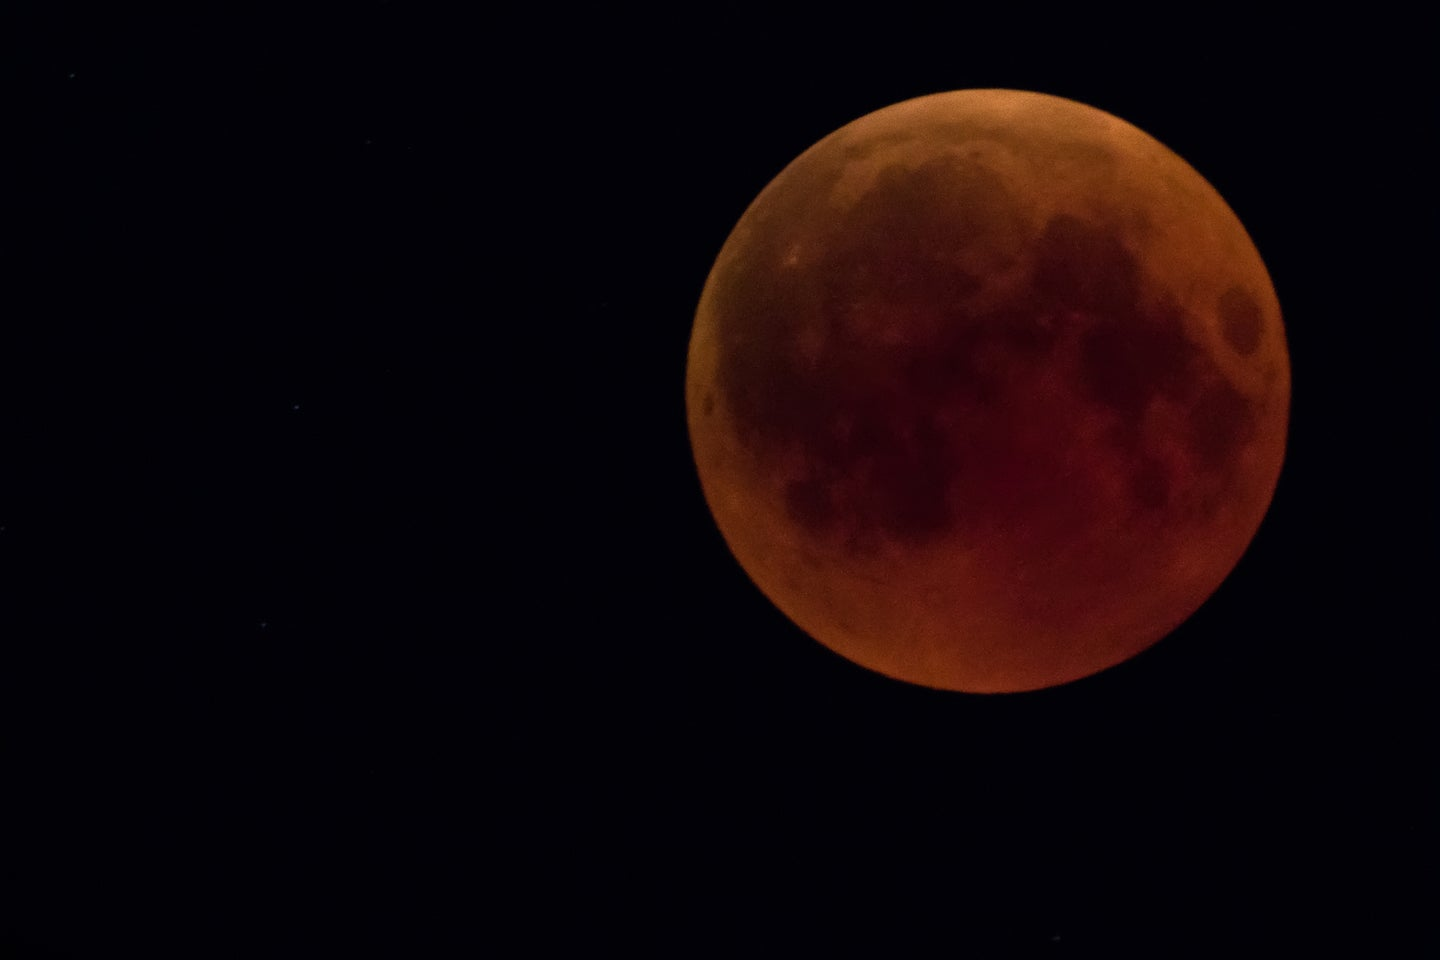 a moon with a red tint due to a lunar eclipse